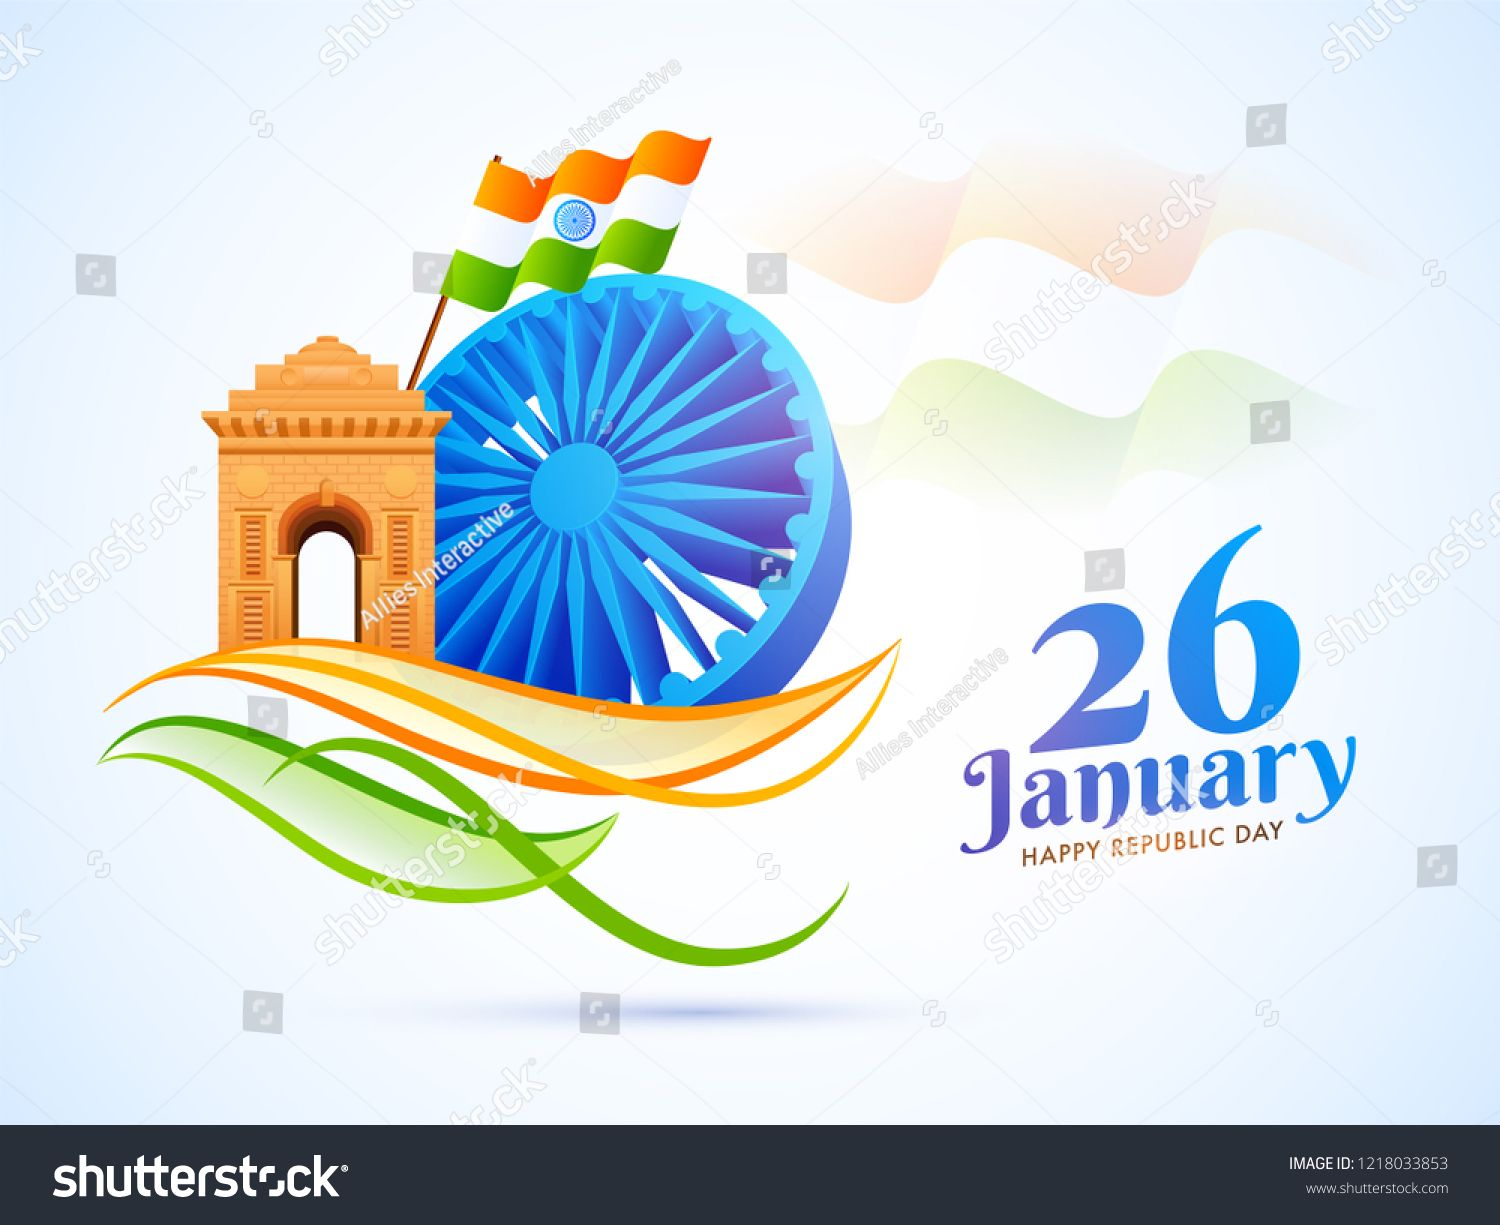 3d Ashoka Wheel With India Gate And Waving Indian Flag Illustration For 26 January Republic Day Republic Day Indian Flag India Gate Happy republic day 2021 india gate